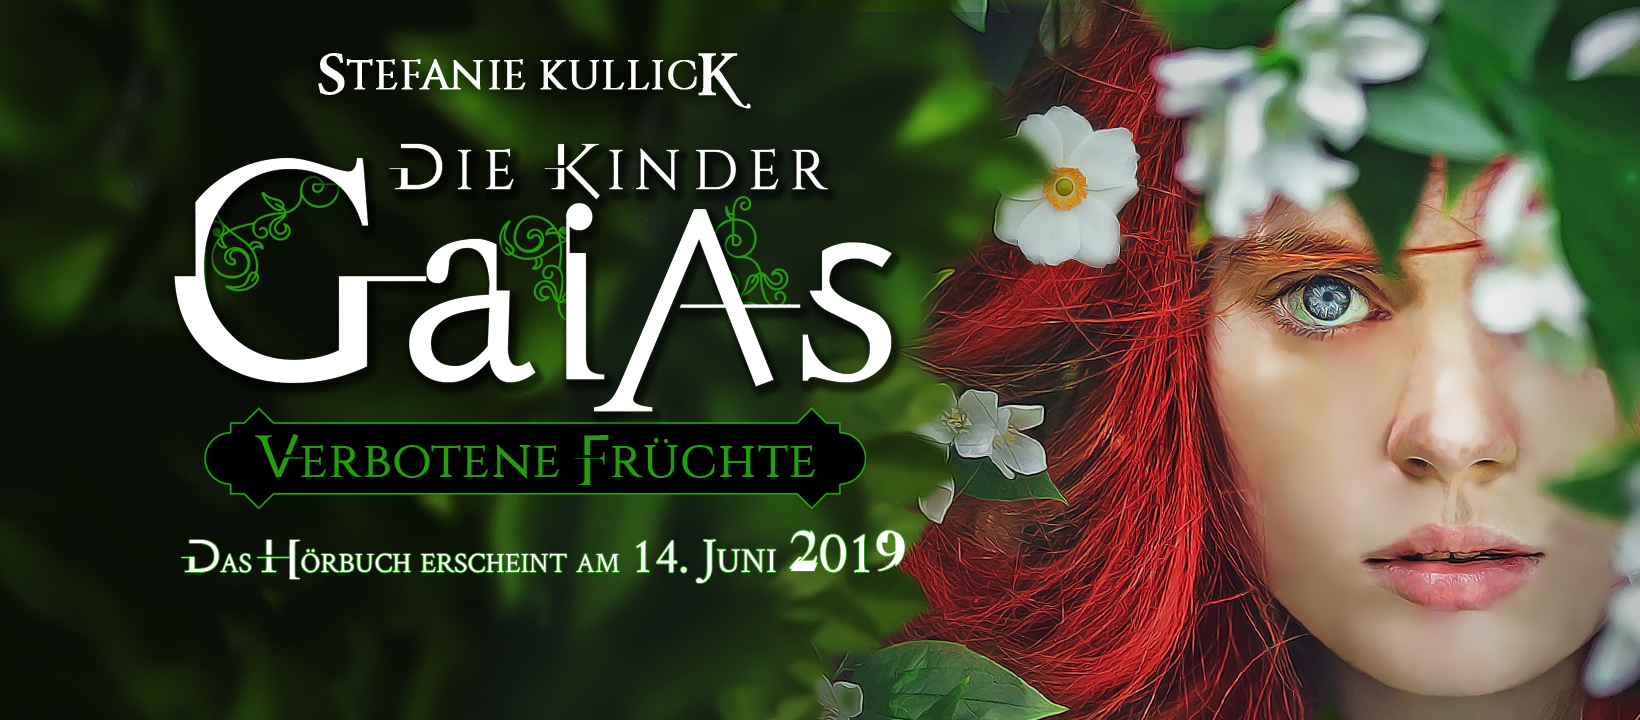 Die-Kinder-Gaias-Verbotene-fruchte-FB-HEADER-NEW-SUB